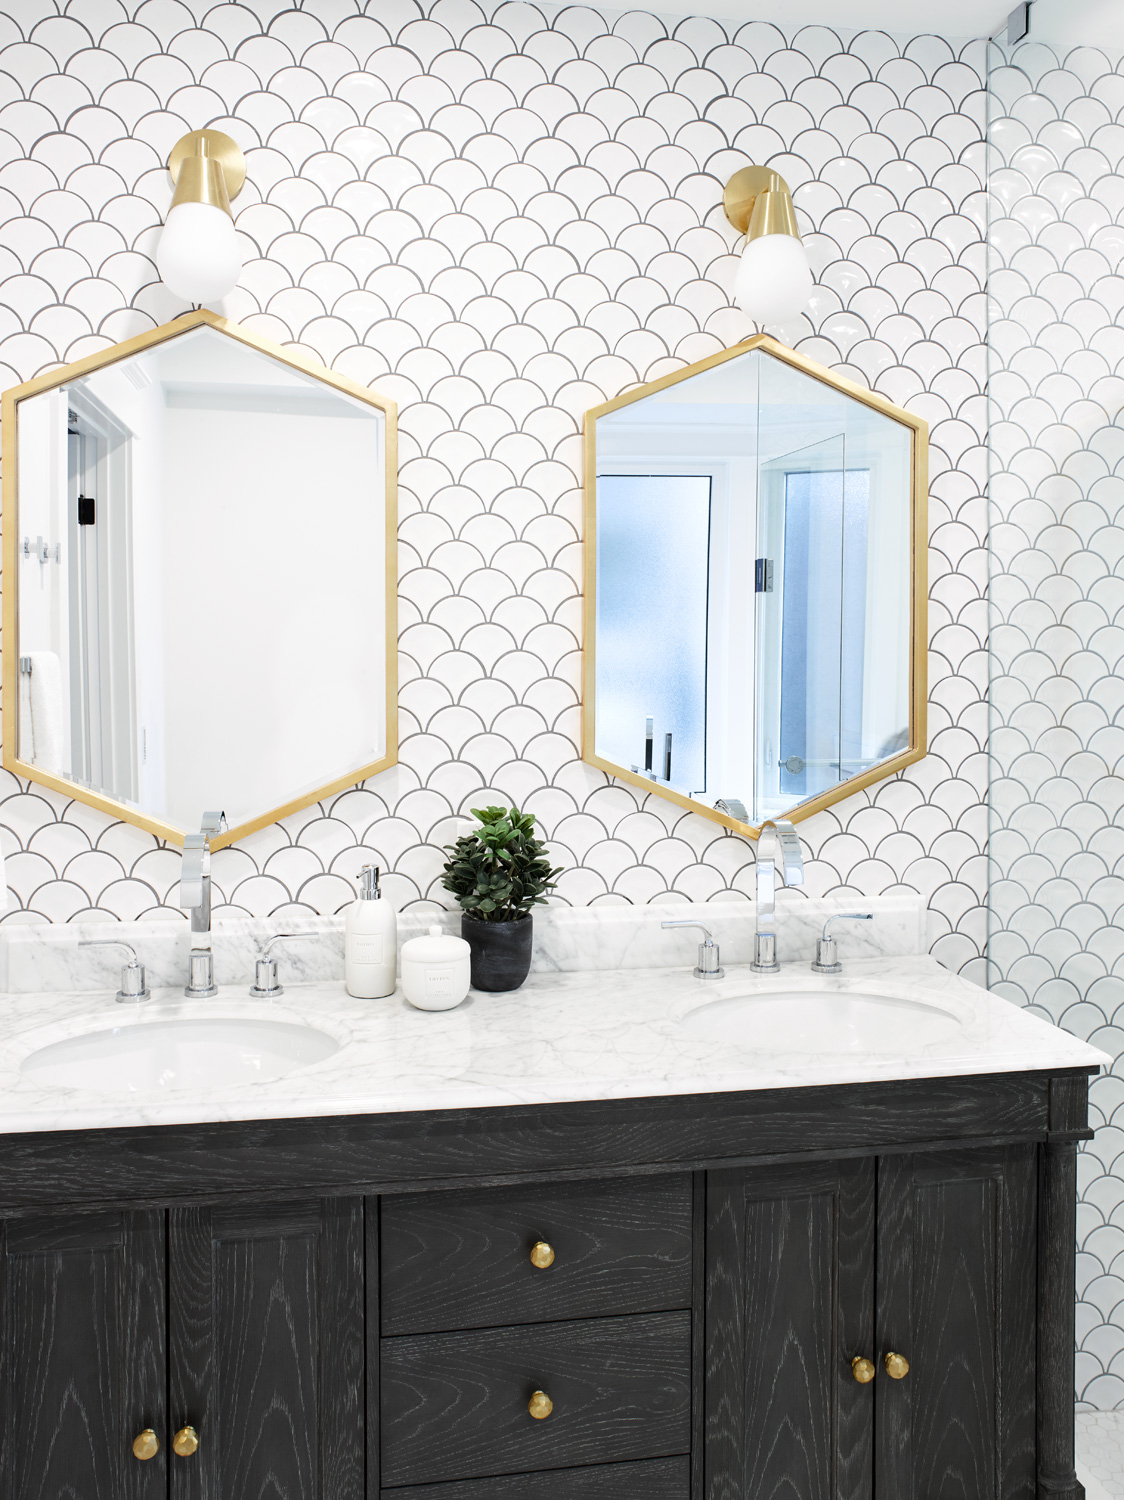 Transitional Vanity with Fish scale tile